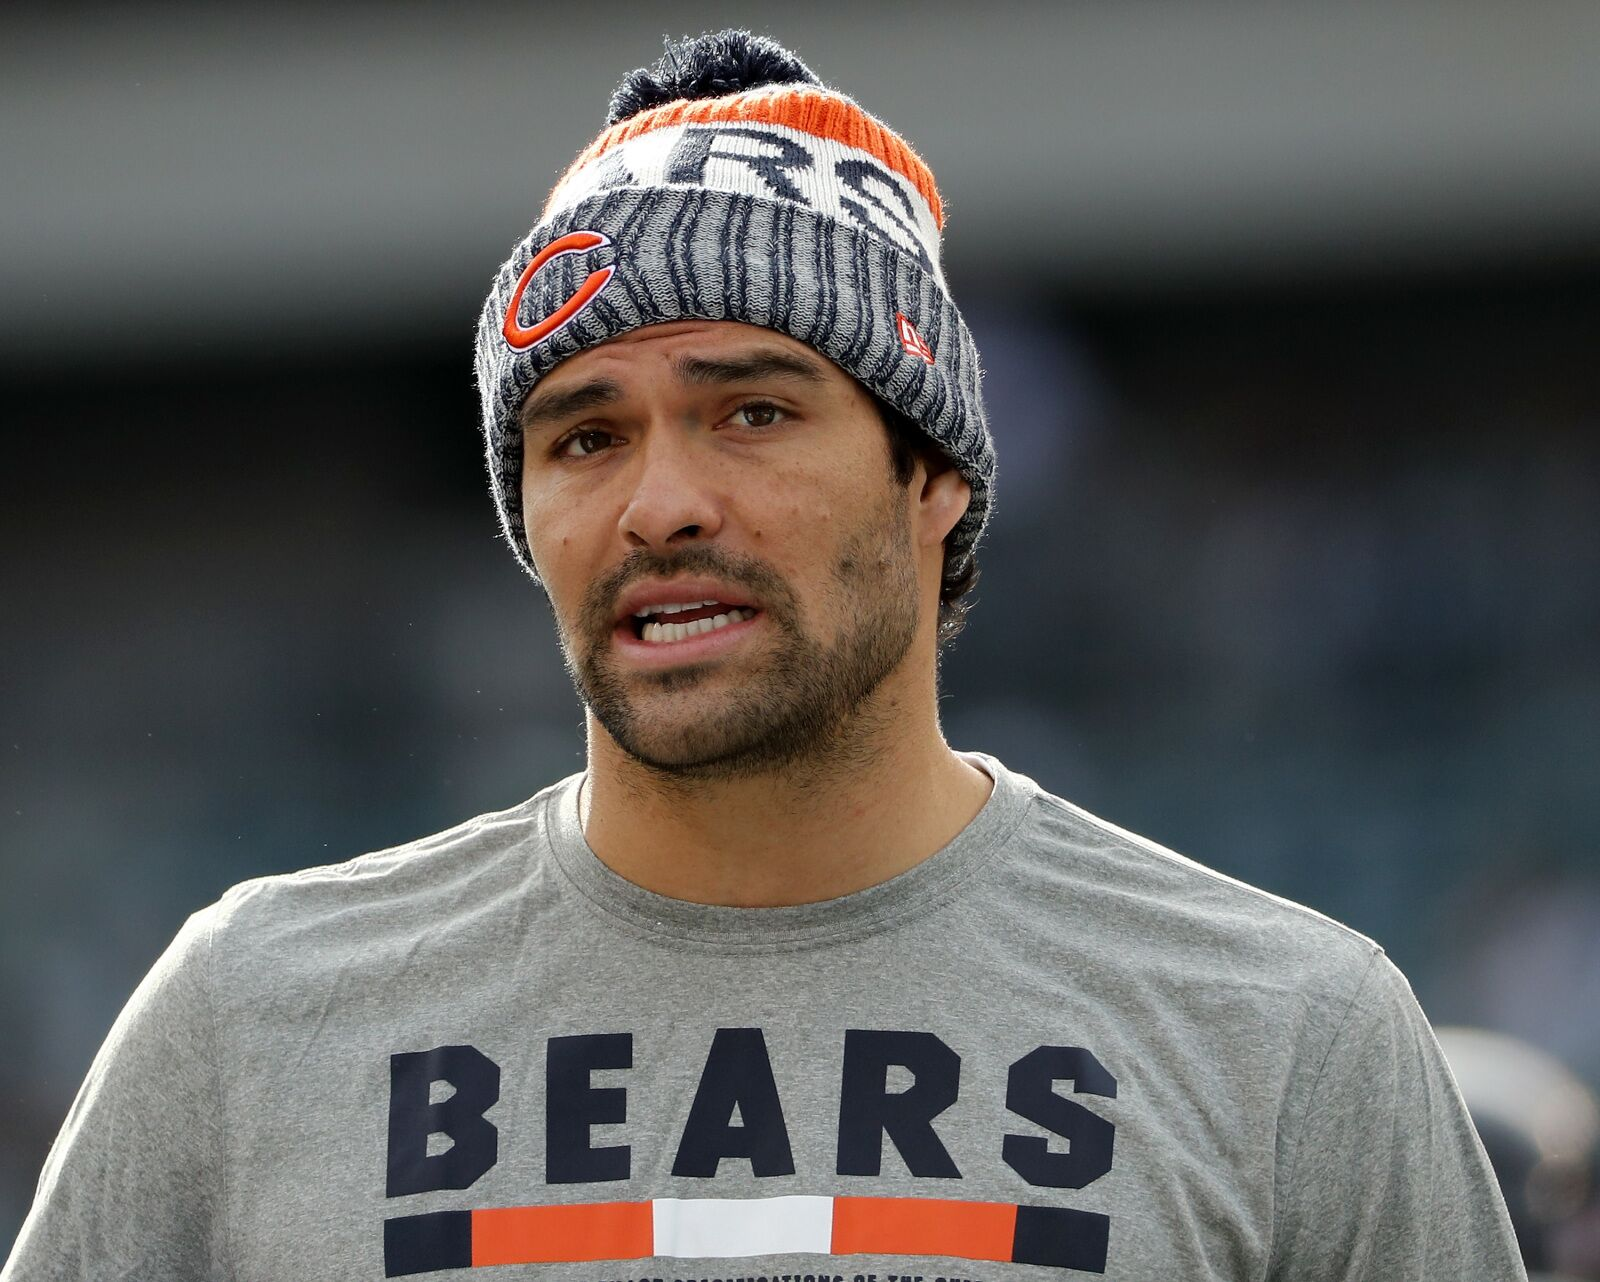 b7a184597 Redskins sign veteran QB Mark Sanchez to back up Colt McCoy